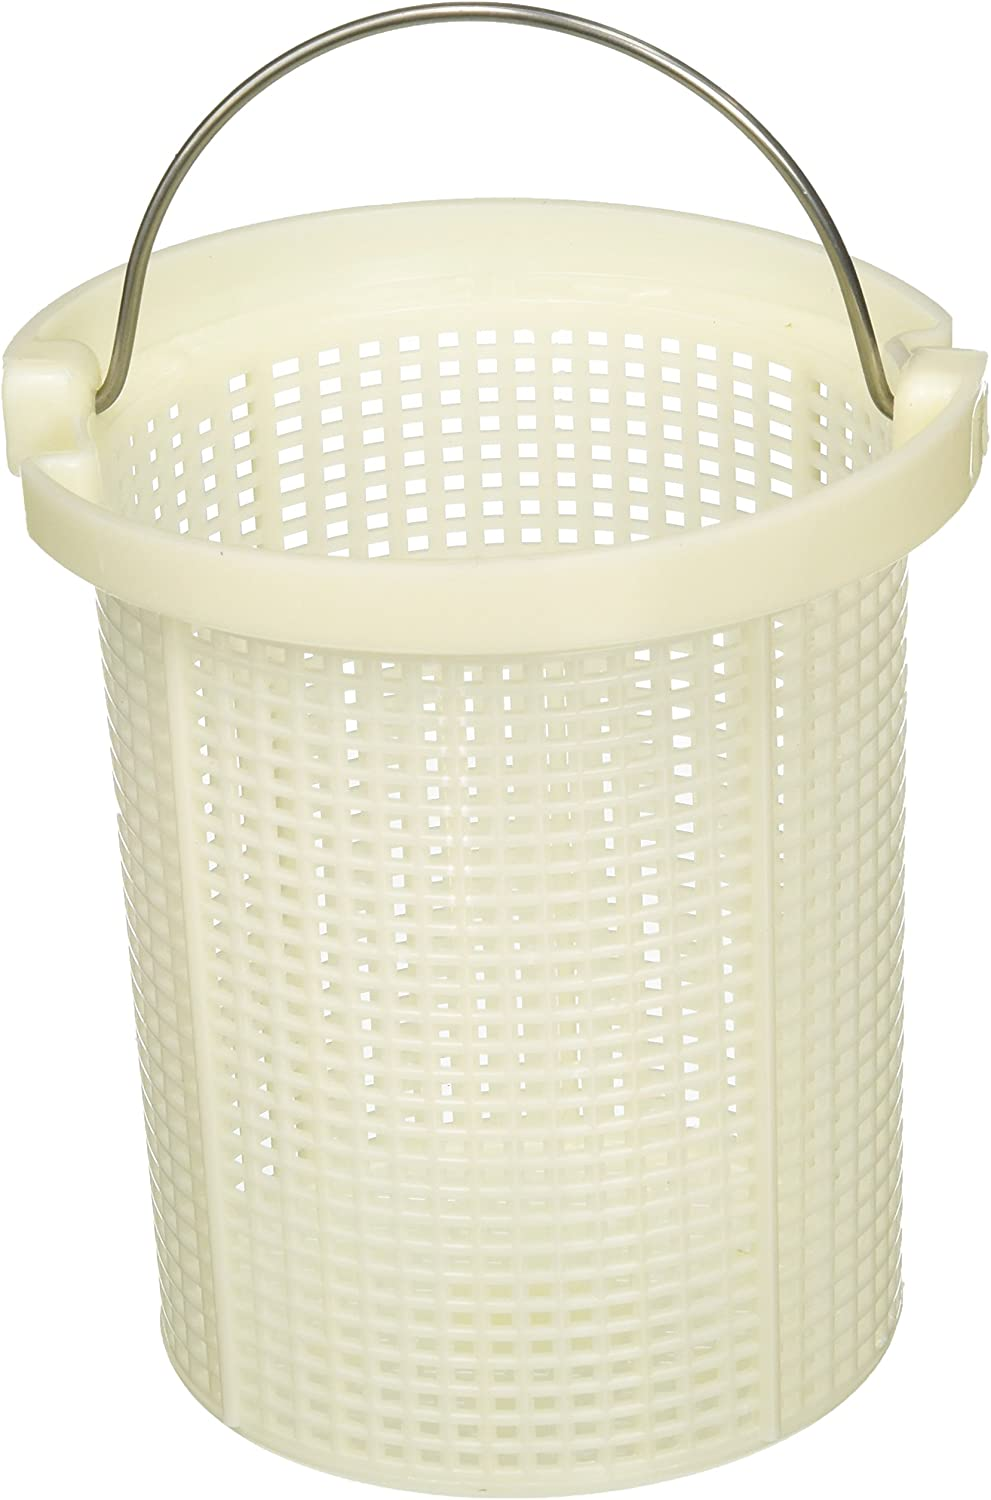 Pentair C108-33P 5-Inch Trap Strainer Basket Replacement Sta-Rite Pool and Spa Pump